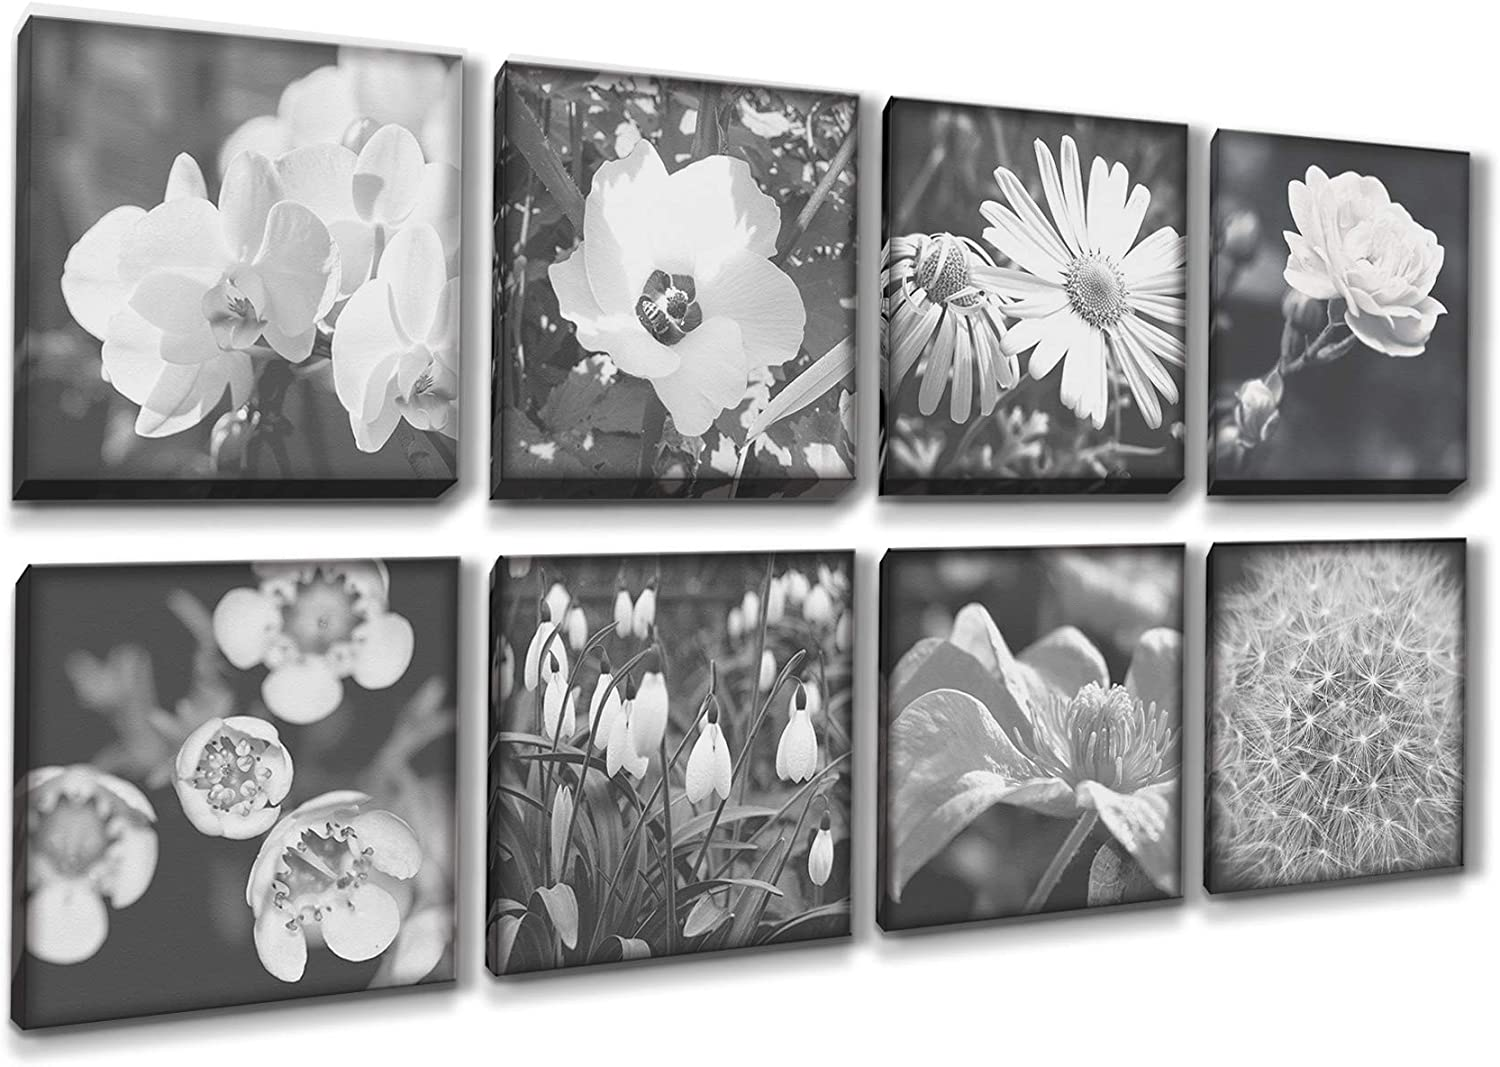 MARG Wall Decorations for Living Room, Black and White Flowers Mini Canvas Wall Art, 8 Panels 8x8 inch/Piece, House Decor